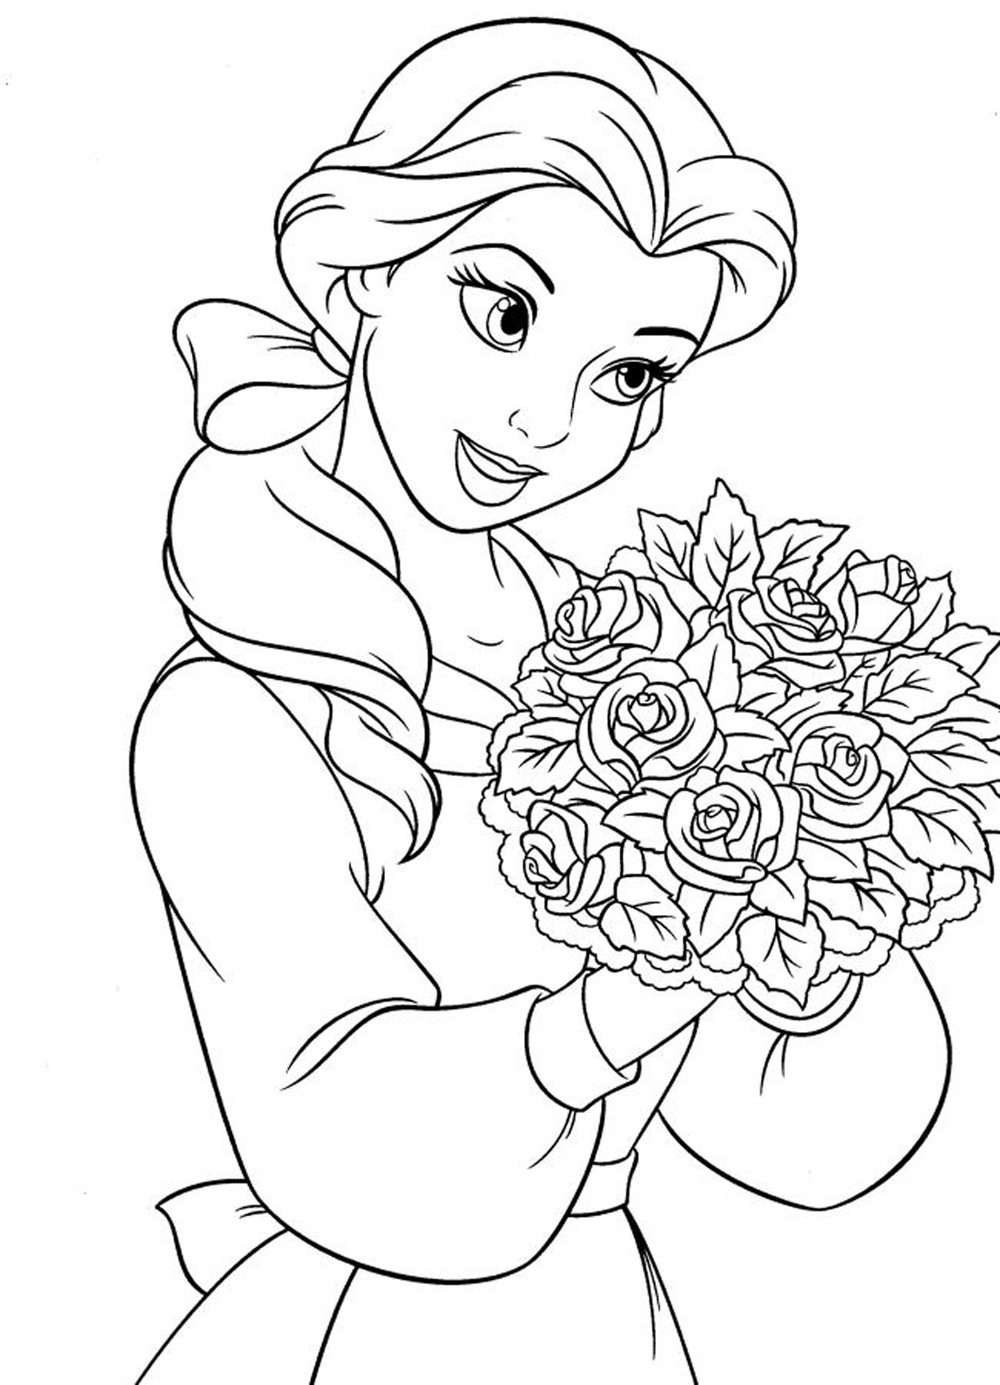 Free coloring disney princess pages - Disney Princess Tiana Coloring Pages